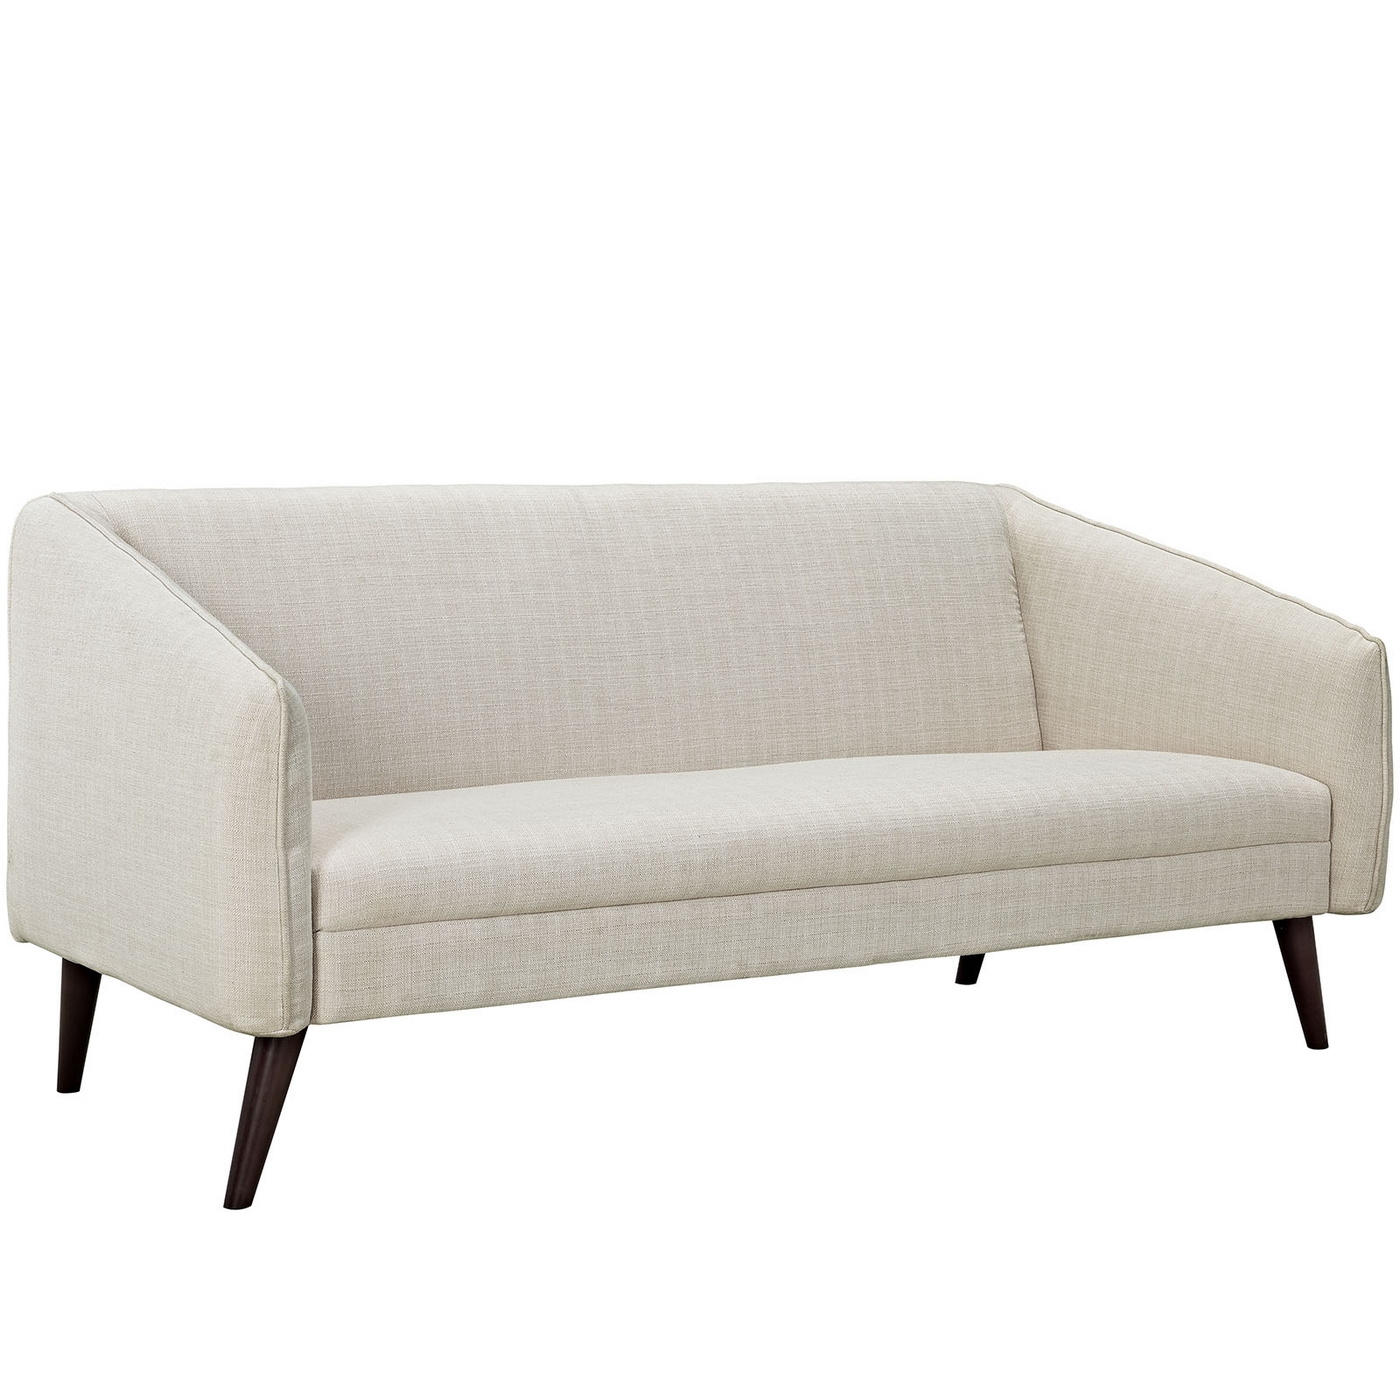 Mid century modern slide upholstered sofa with wood frame for Mid century modern upholstered chair